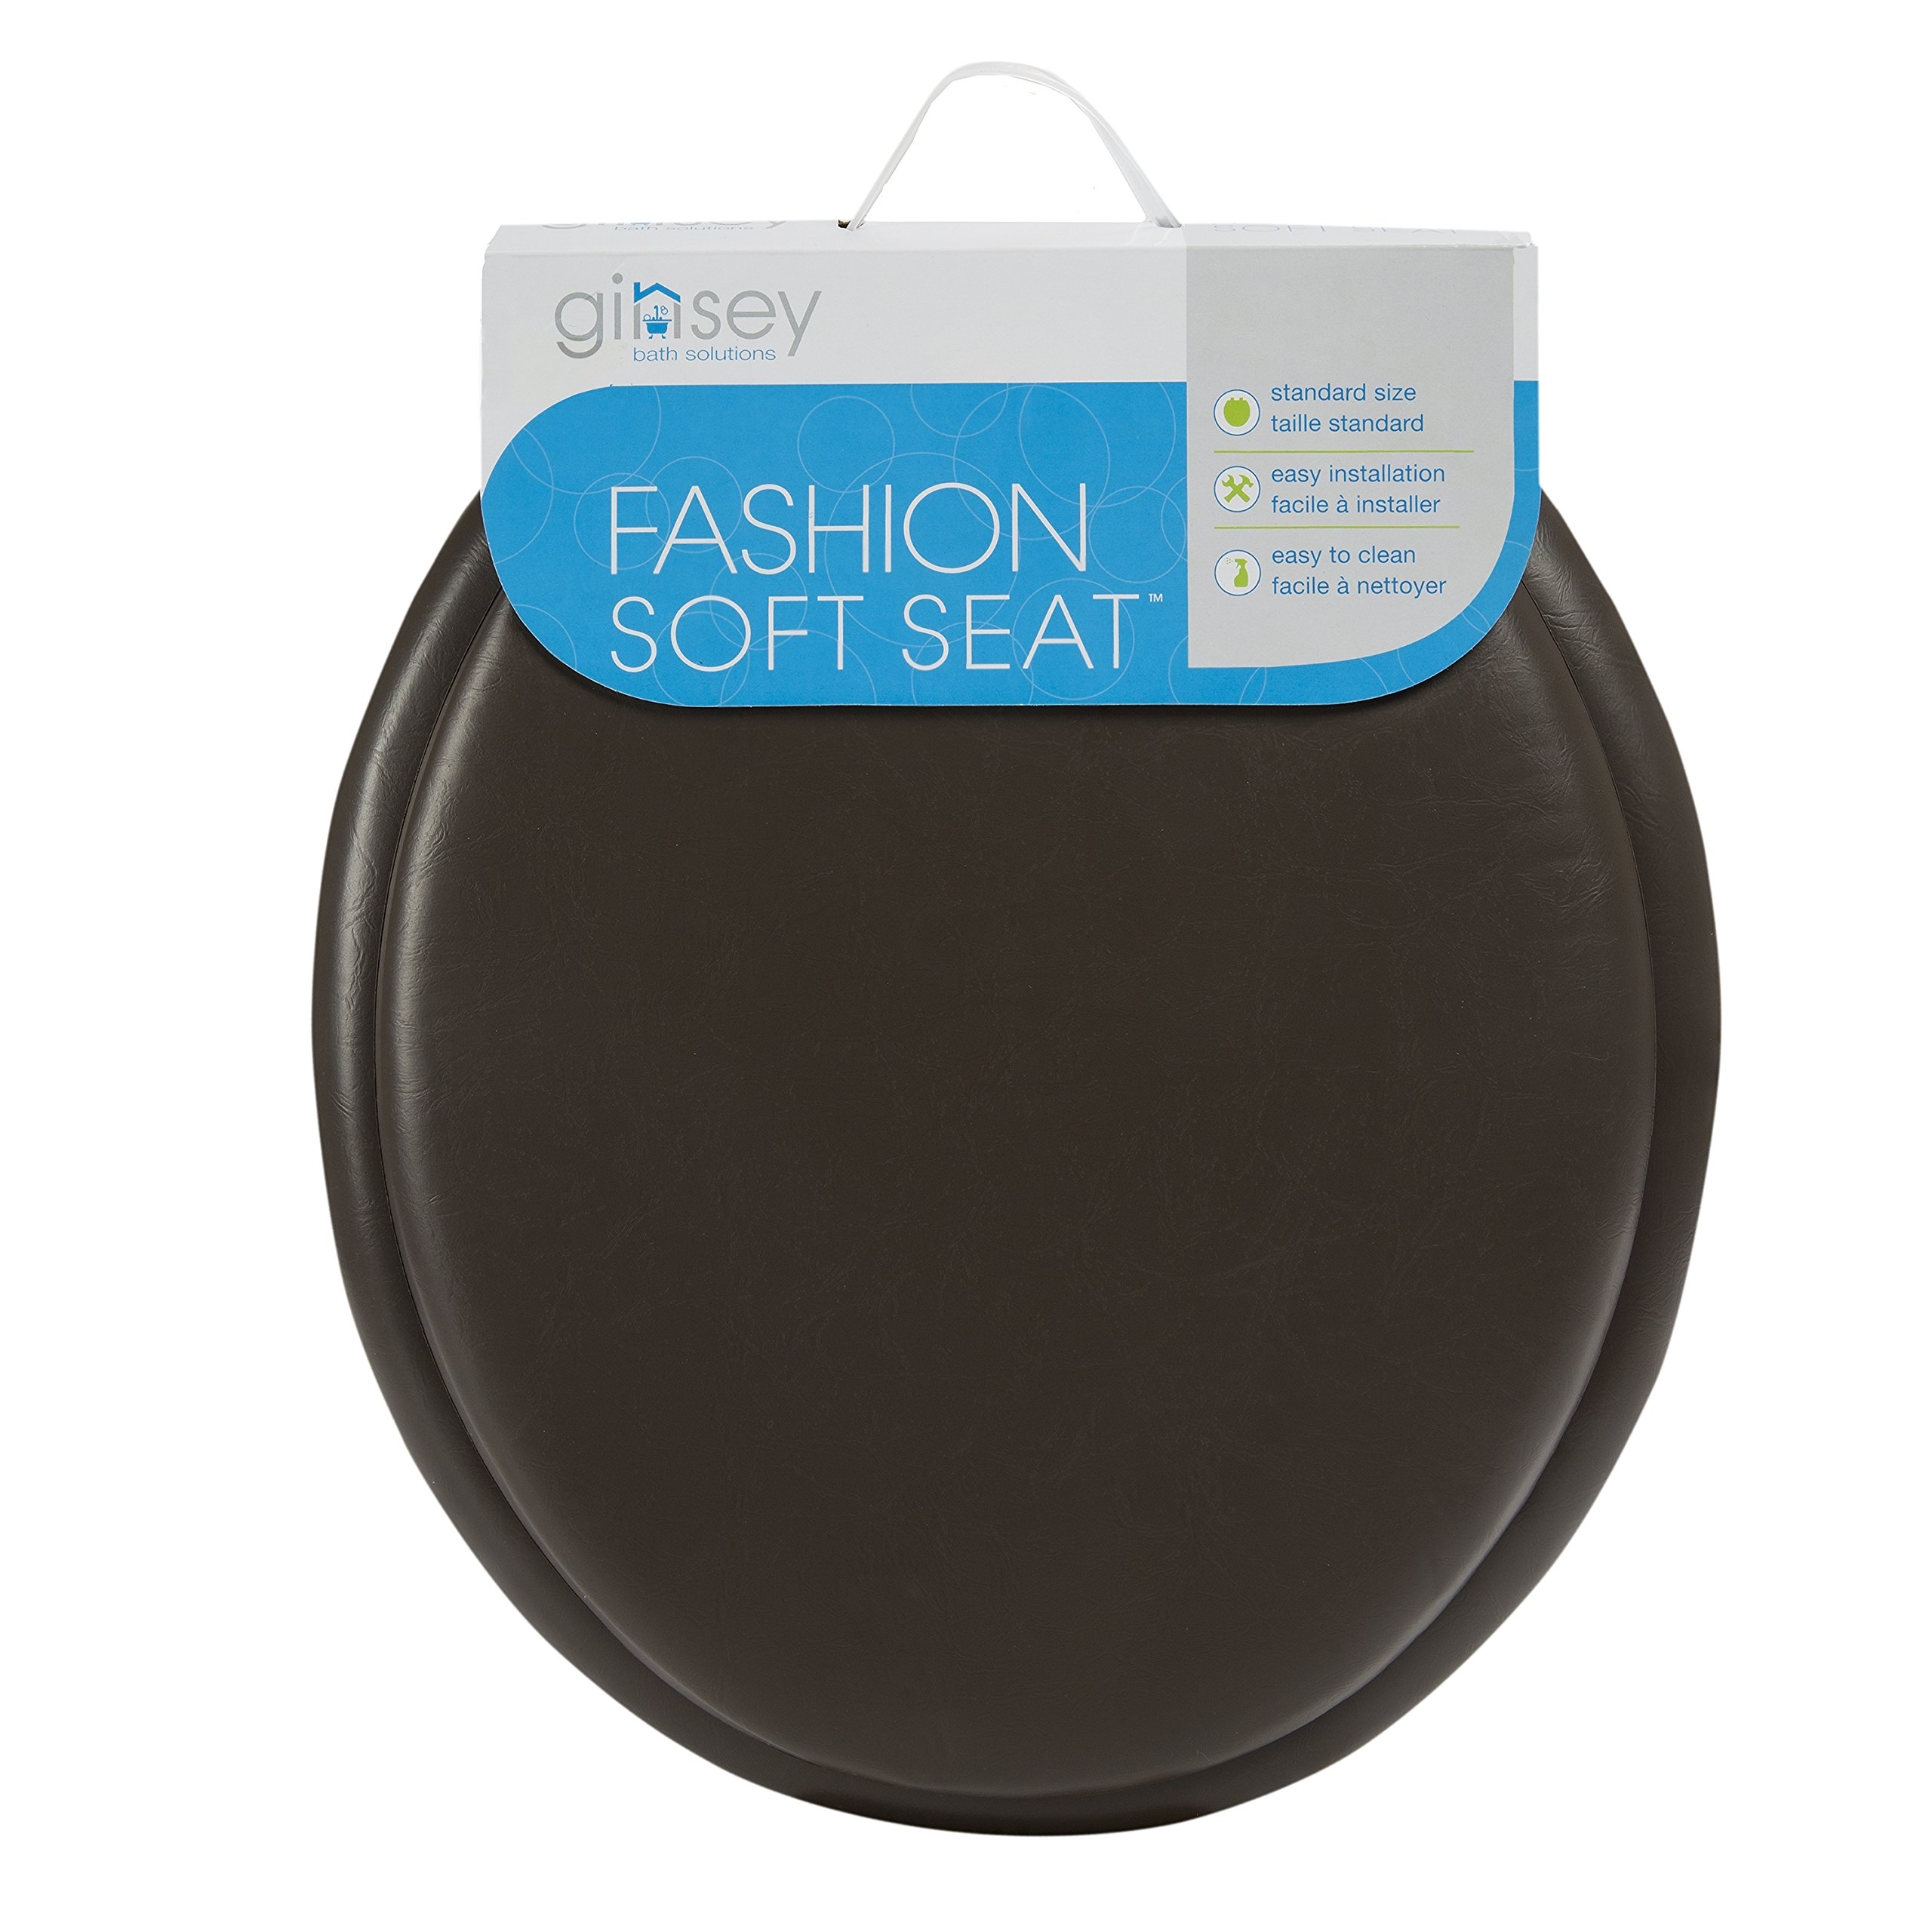 16 Attractive Window Seat Designs For Pleasant Relaxation: Ginsey Chocolate Soft Toilet Seats With Cover Padded Round